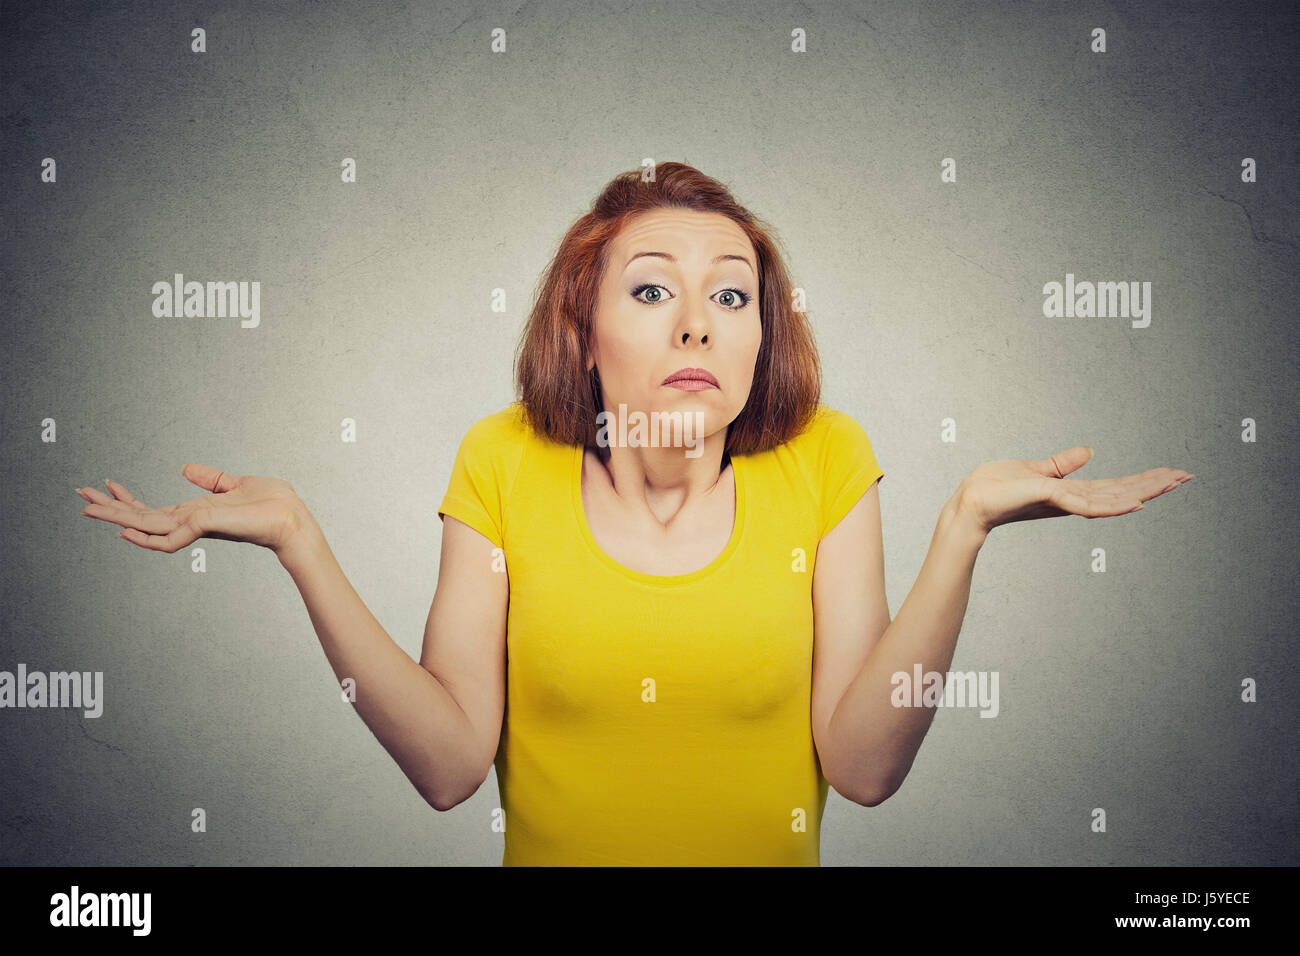 Closeup portrait puzzled clueless young woman with arms out asking what is problem who cares so what I don't - Stock Image